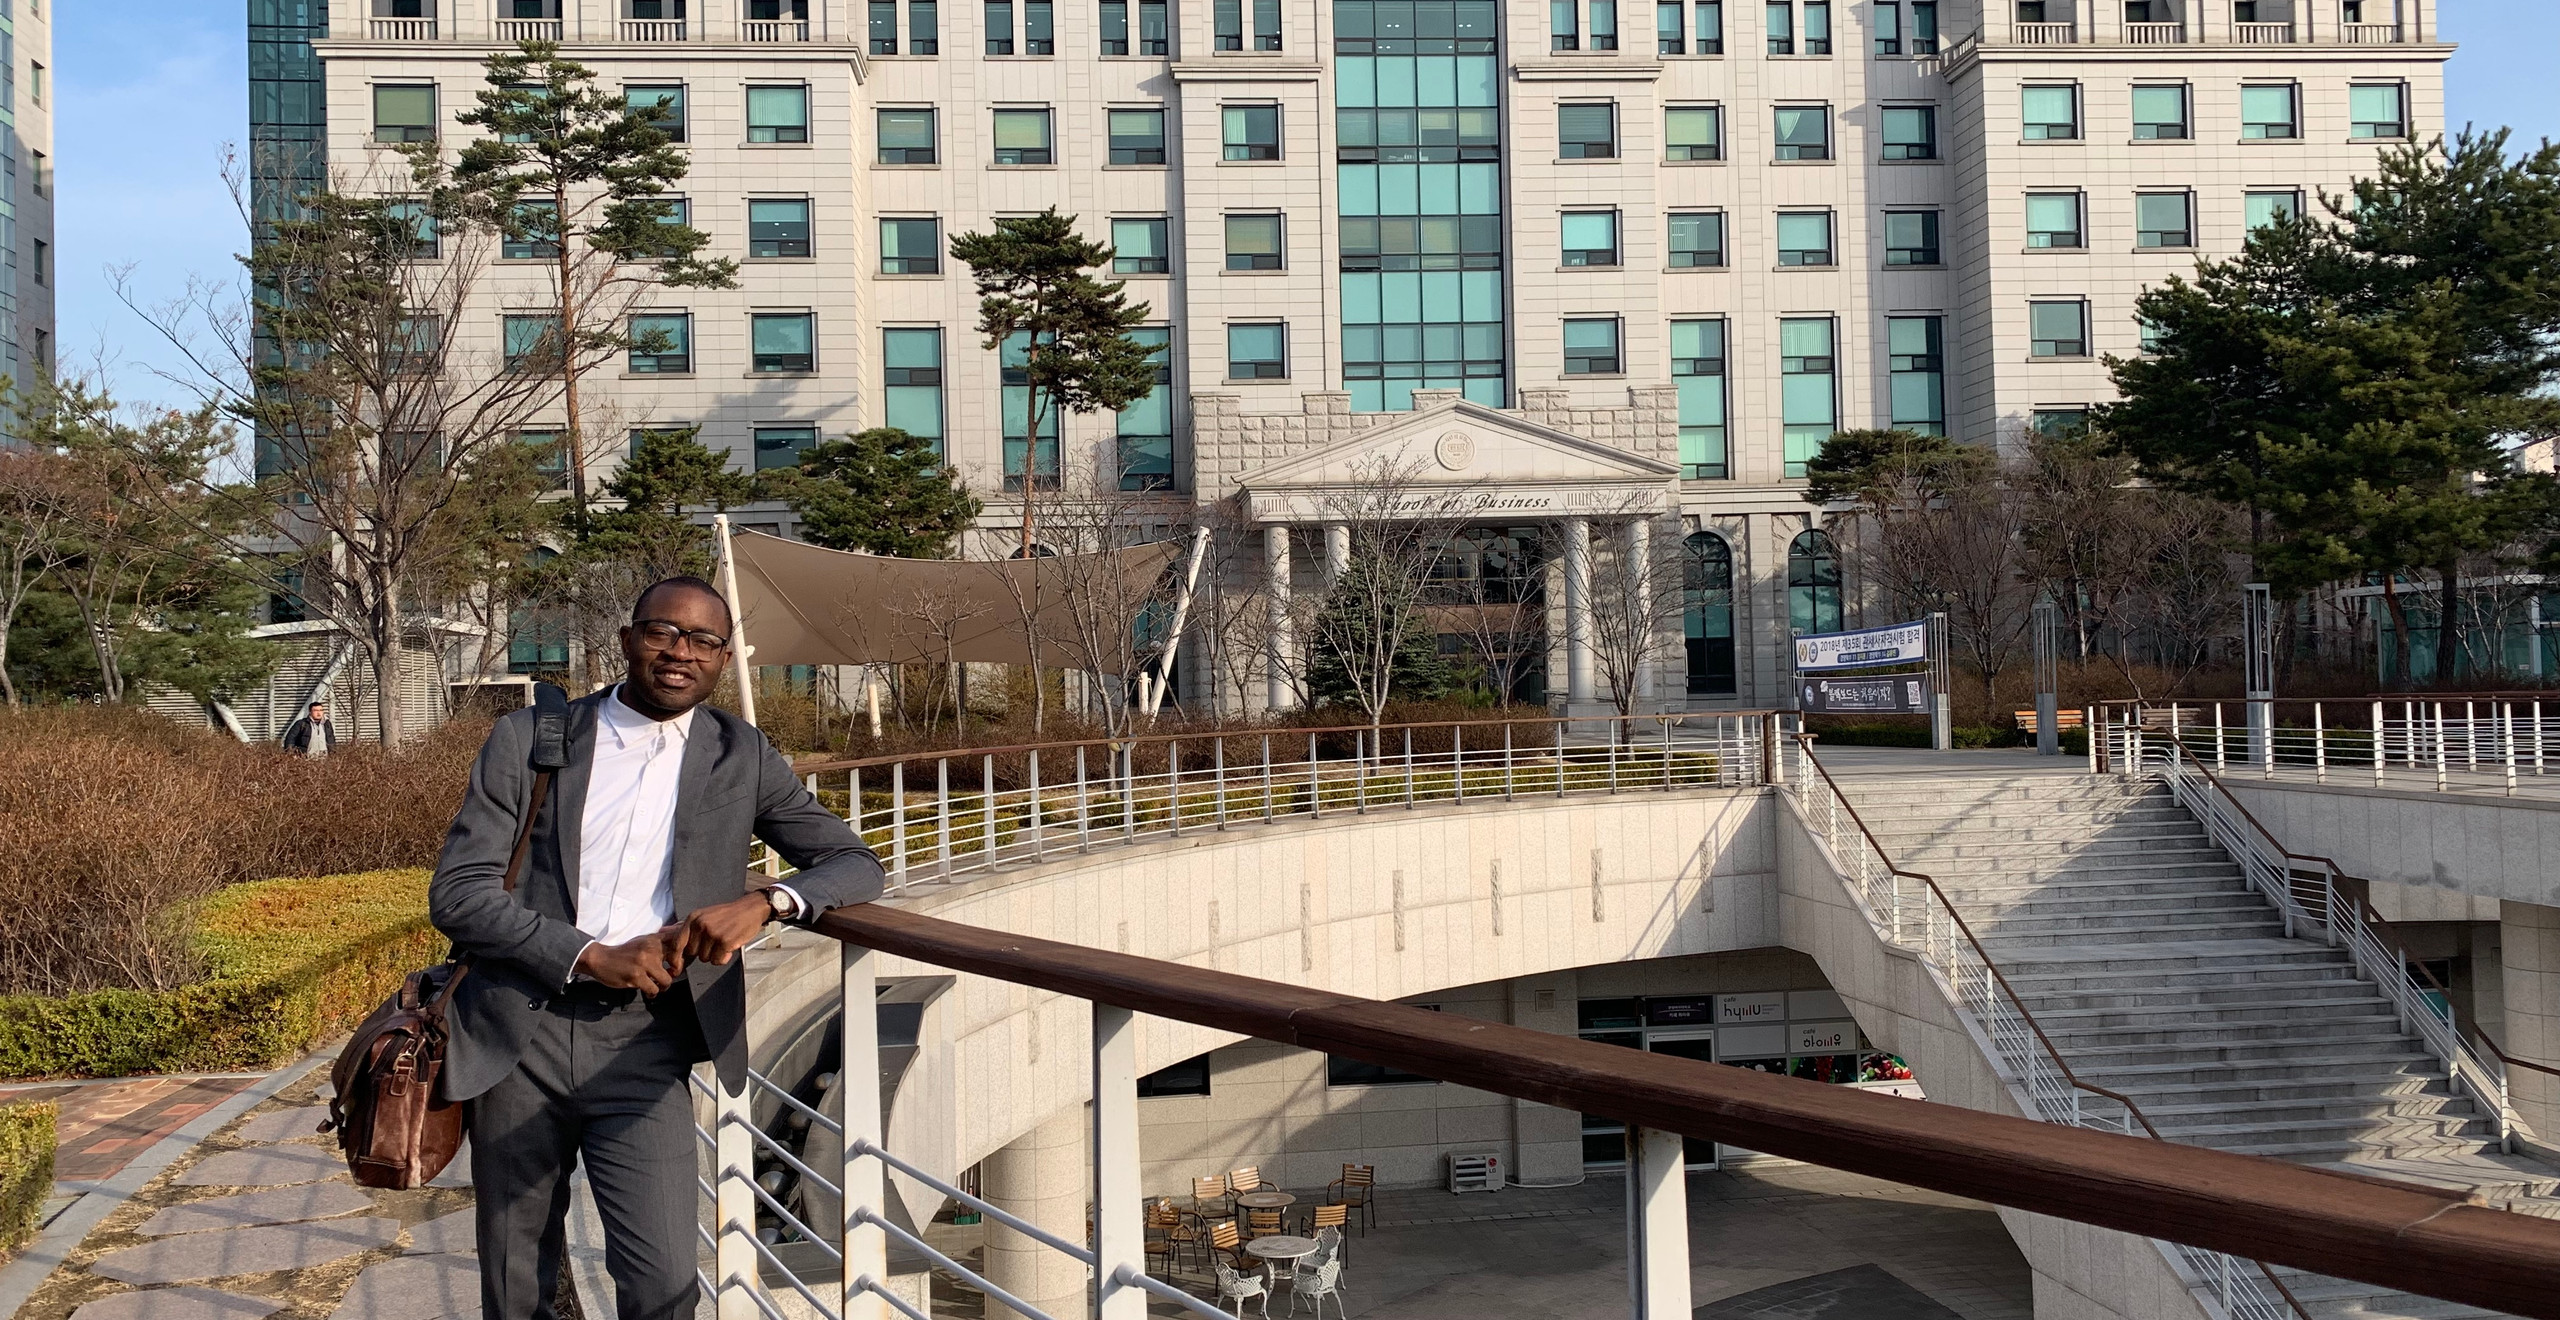 At Hanyang University School of Business in Seoul, South Korea